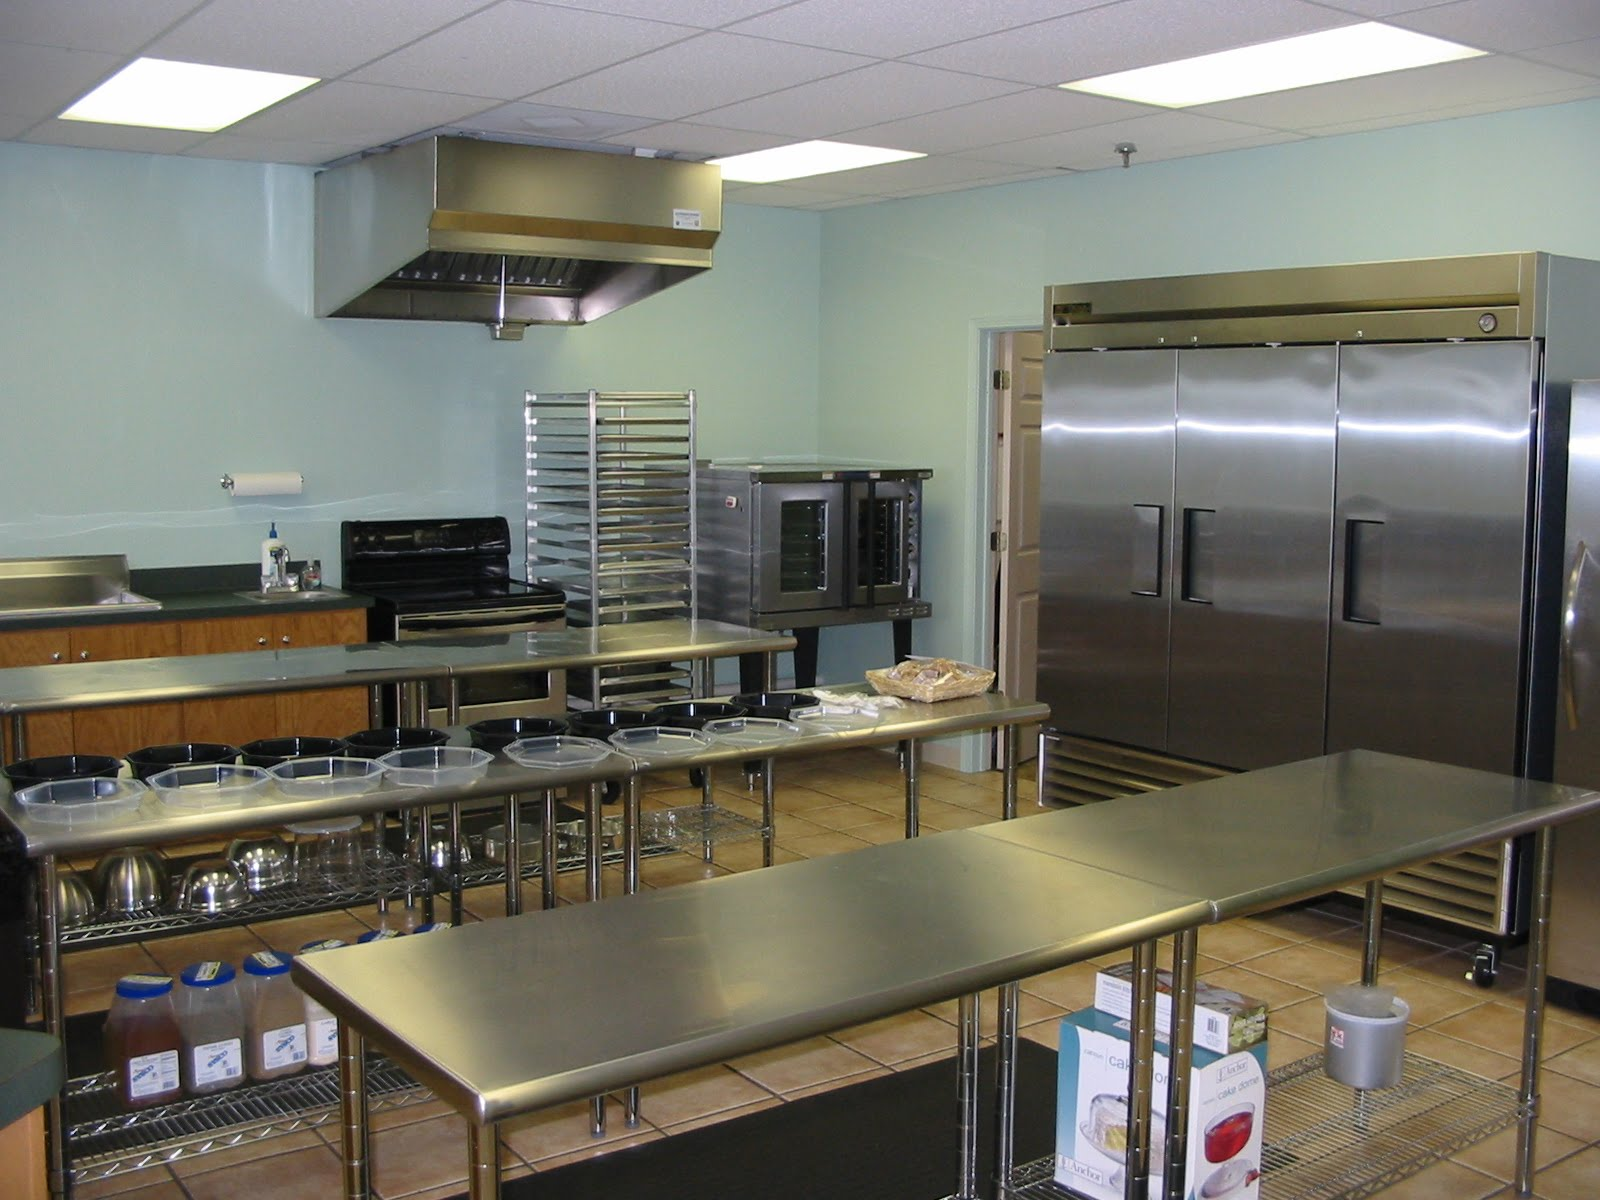 Small commercial kitchen afreakatheart for Implementos restaurante